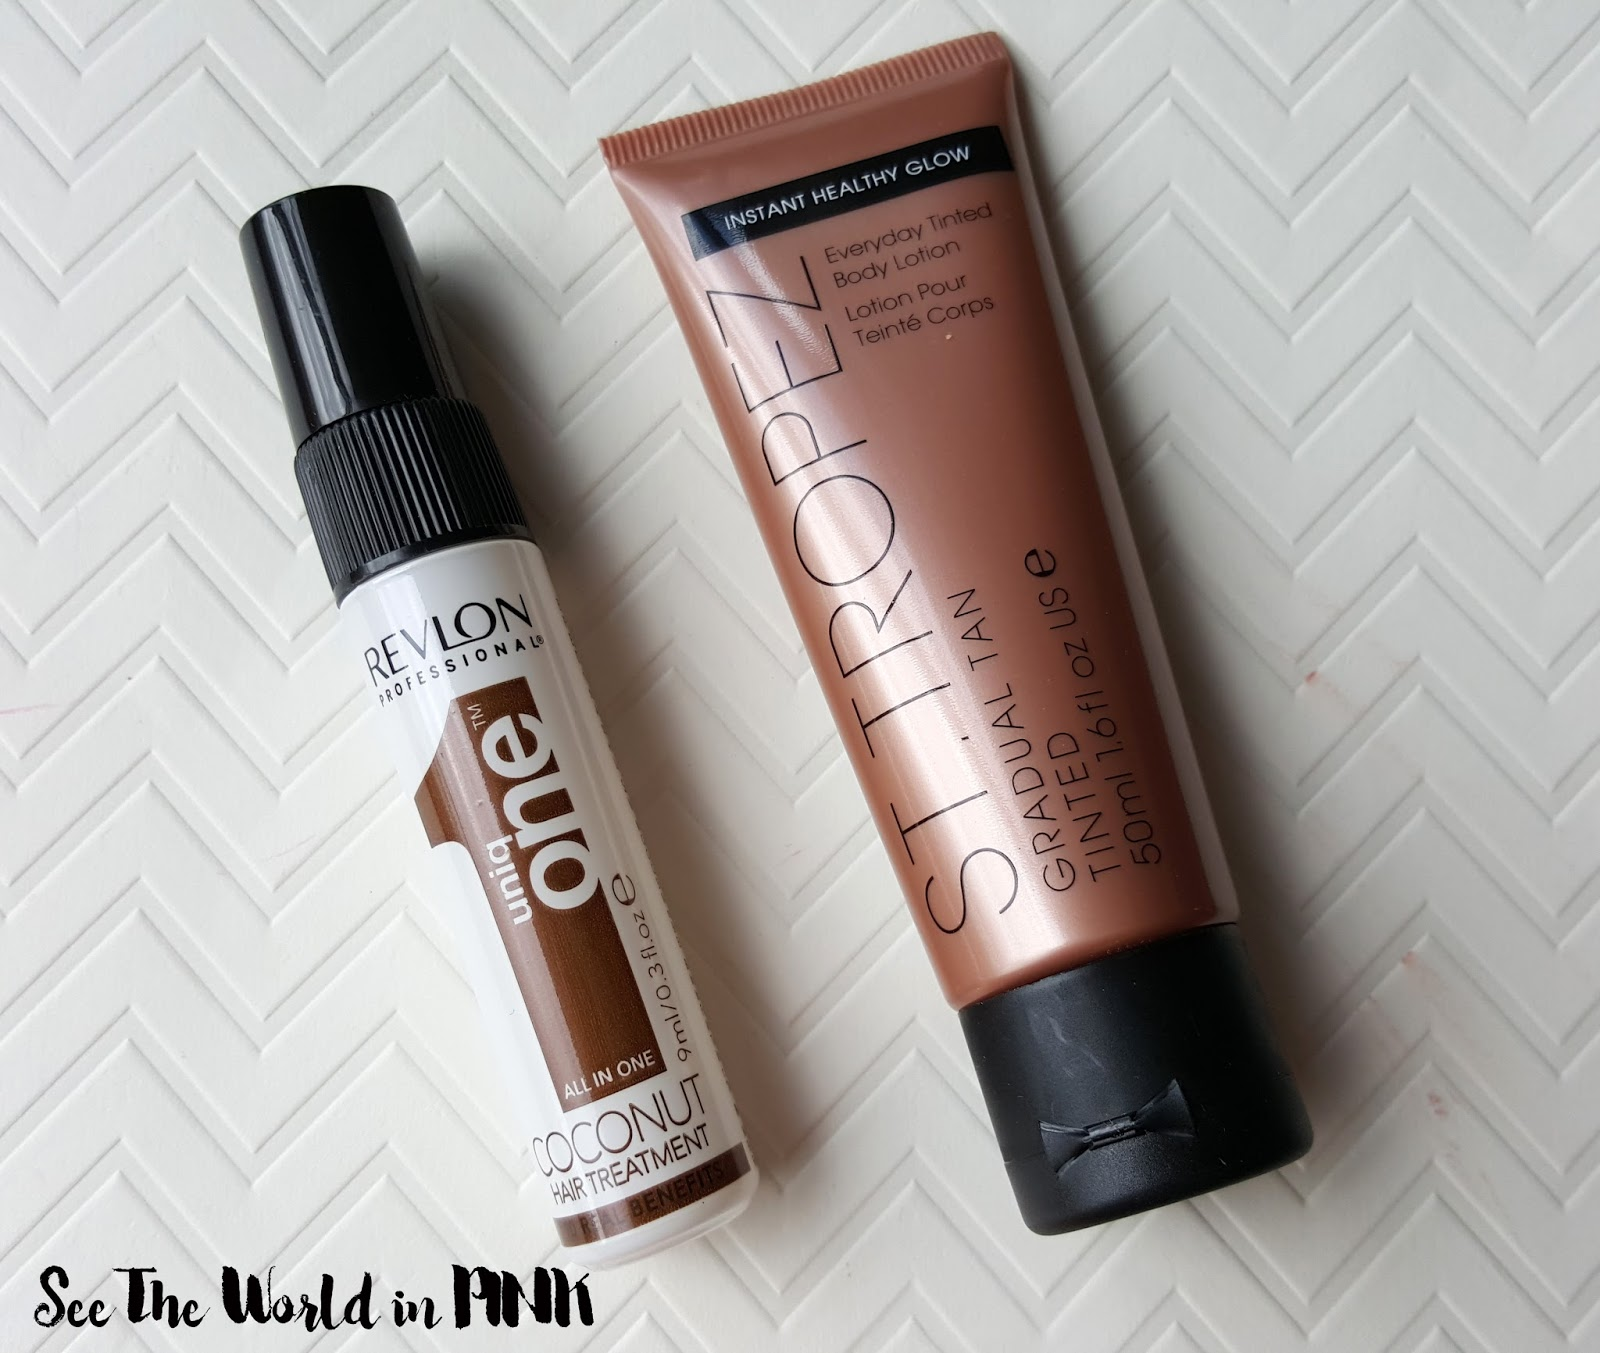 July 2016 Topbox - Review and Unboxing